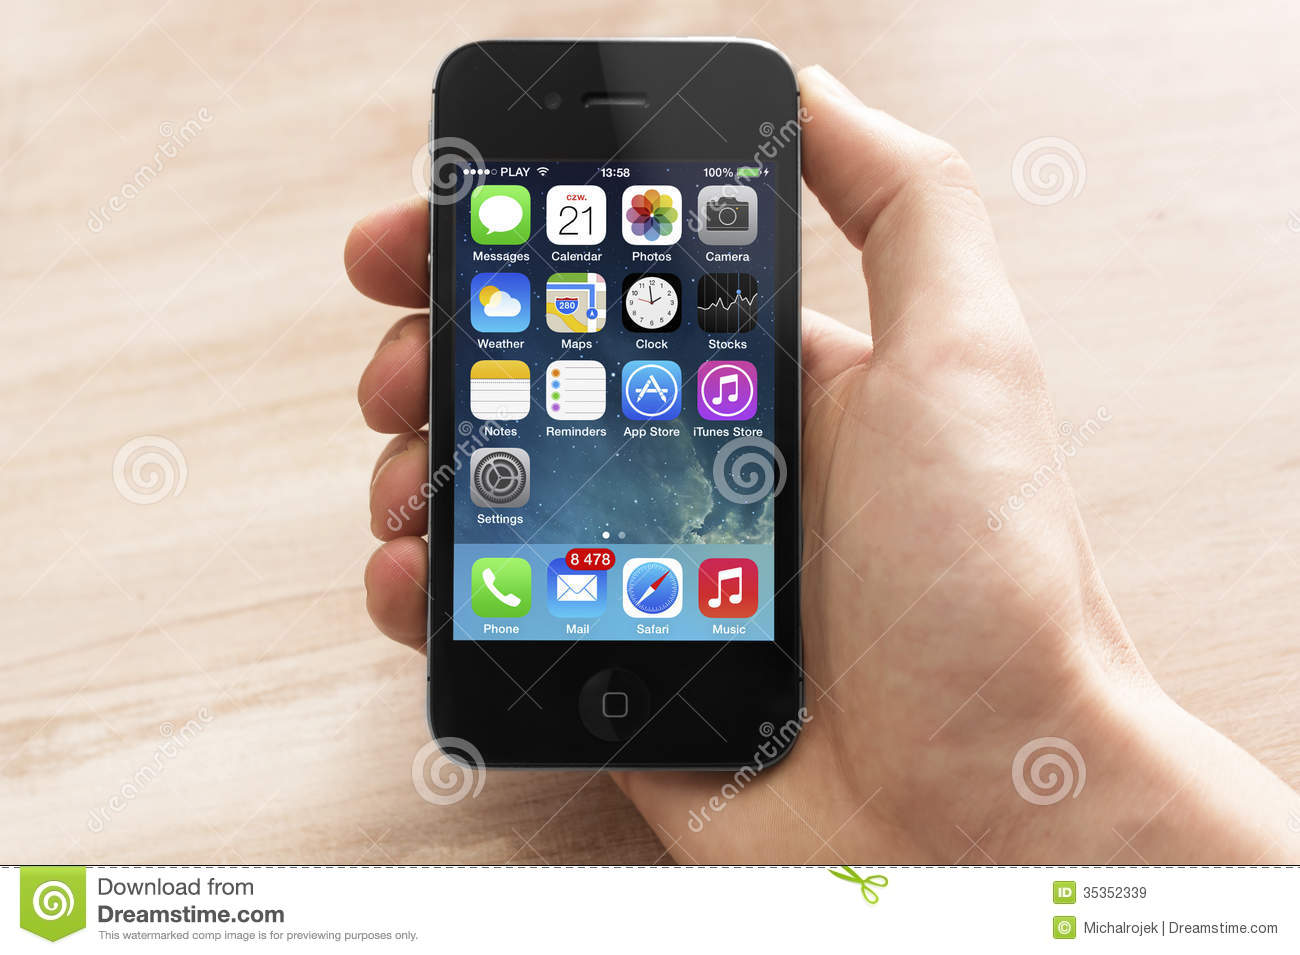 Iphone with new ios 7 editorial stock image  Image of games